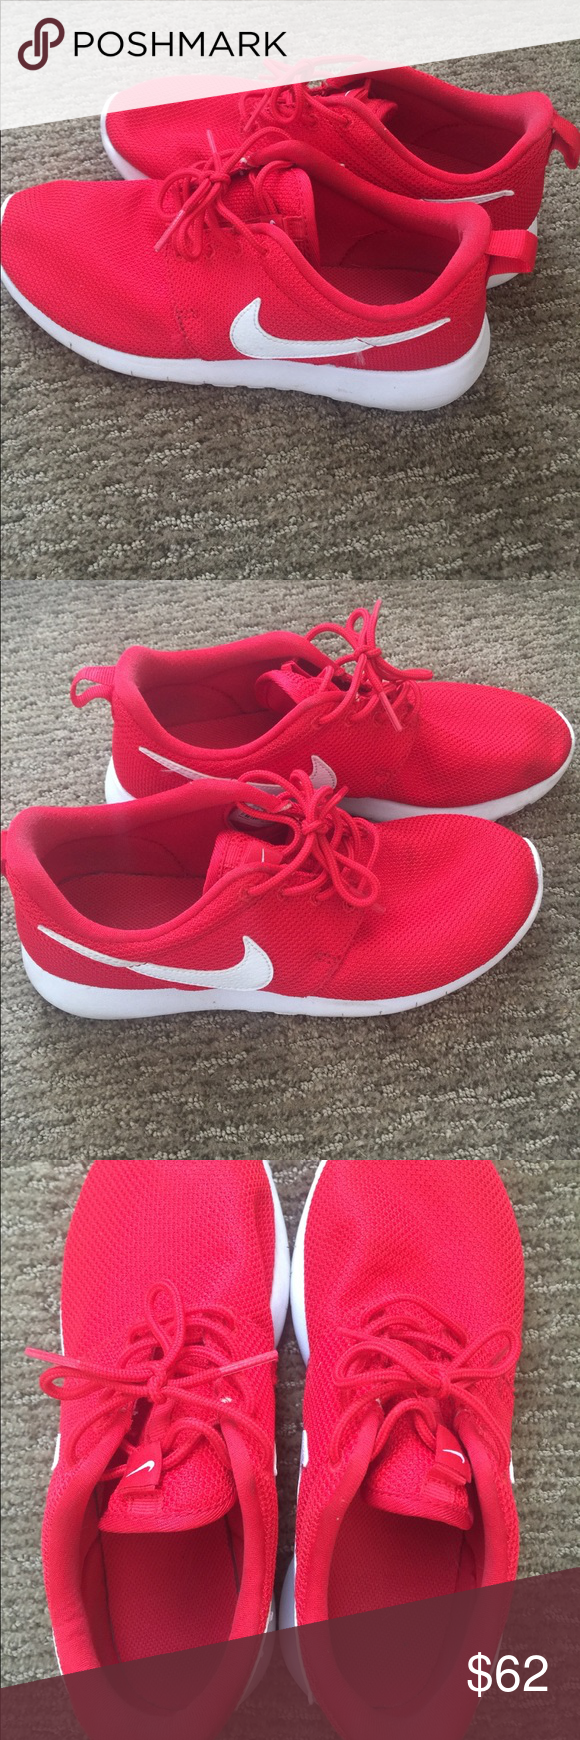 sports shoes 1901d 2a7b5 Nike Roshe Run Red Nike Roshes, worn a couple times! Youth size 5.5,  women s size 7. Nike Shoes Athletic Shoes